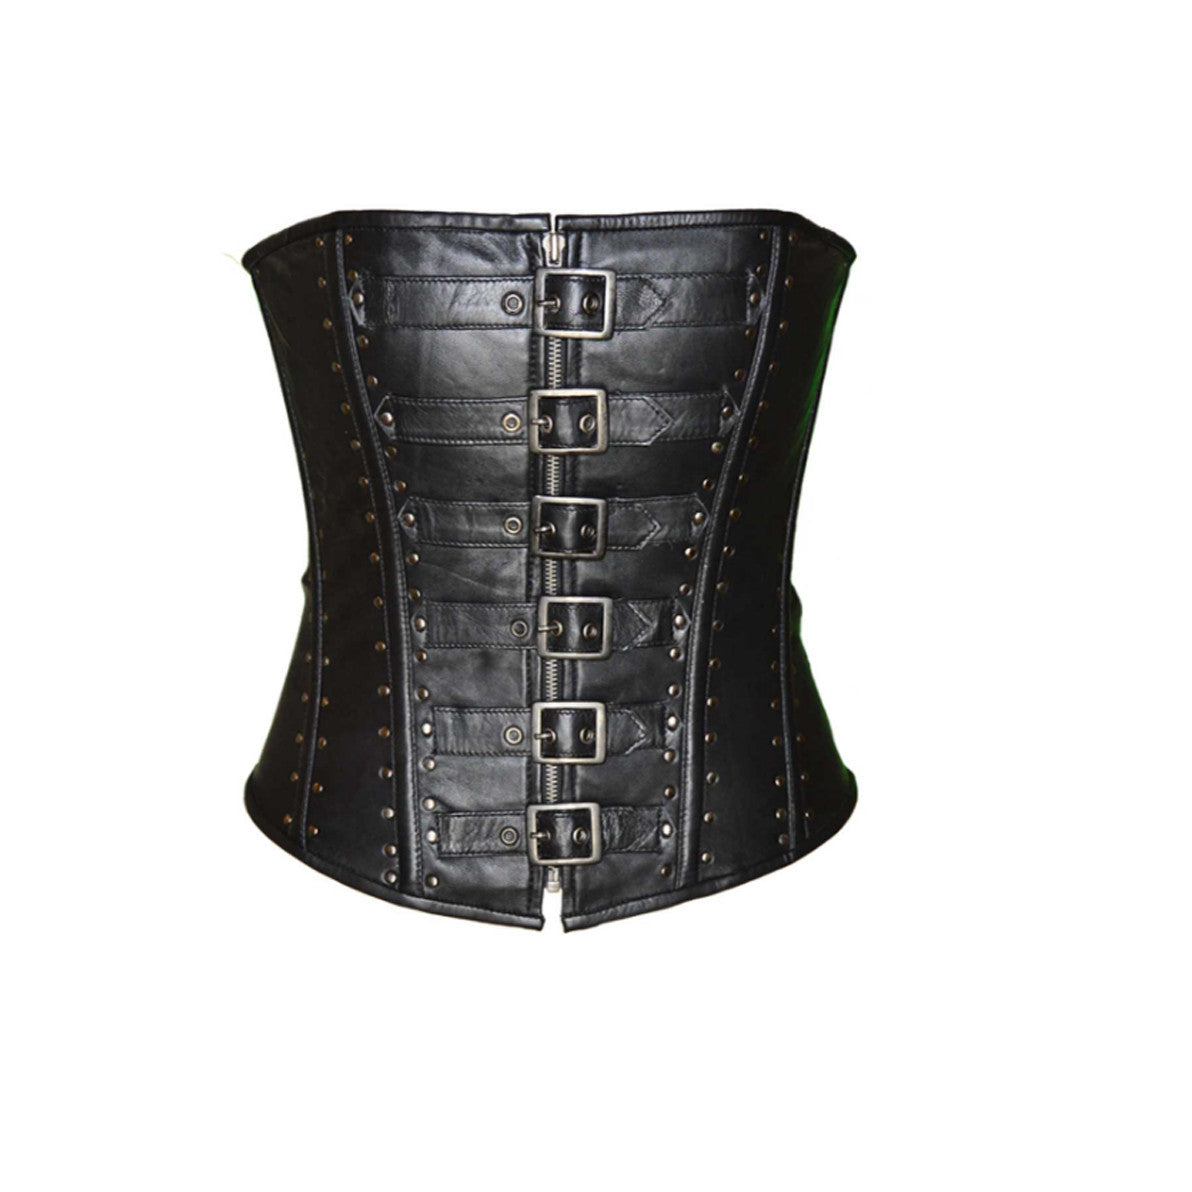 LADIES CORSET 6 BUCKLE ZIP FRONT STUDDED